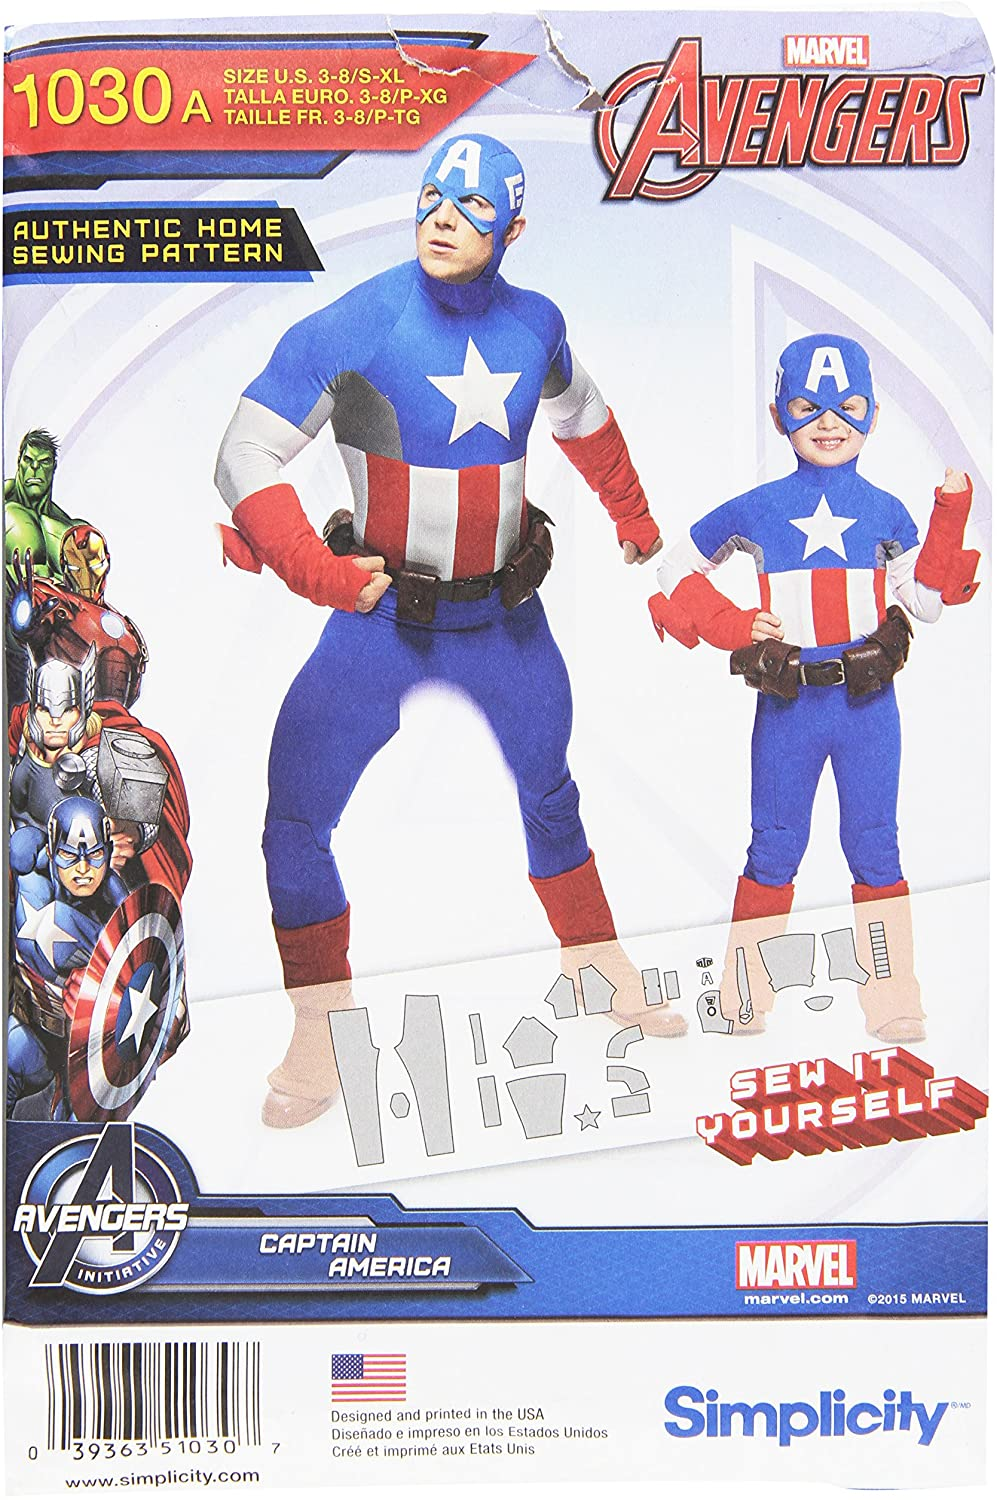 Simplicity Creative Patterns US1030A Boys and Men's Captain America Costume, Size A (3-8/S-XL)